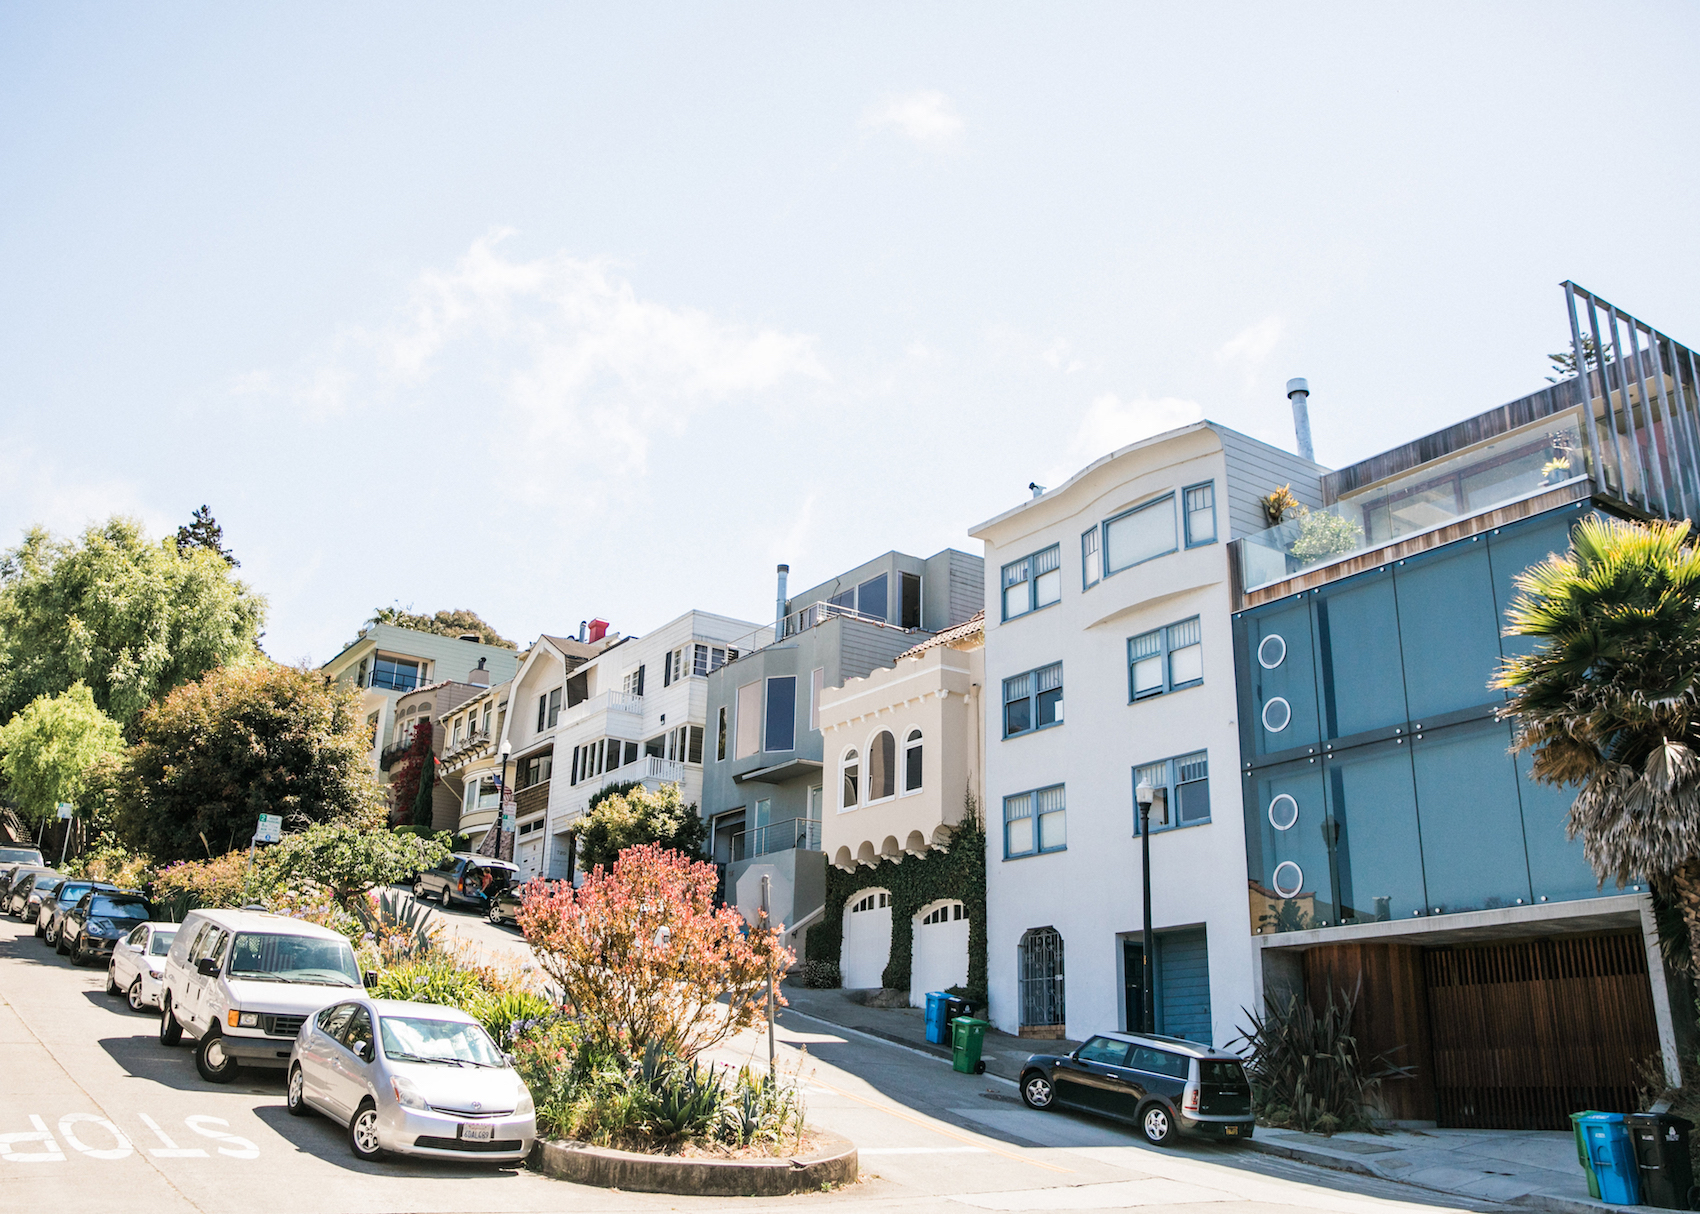 street-with-homes-and-cars-in-noe-valley